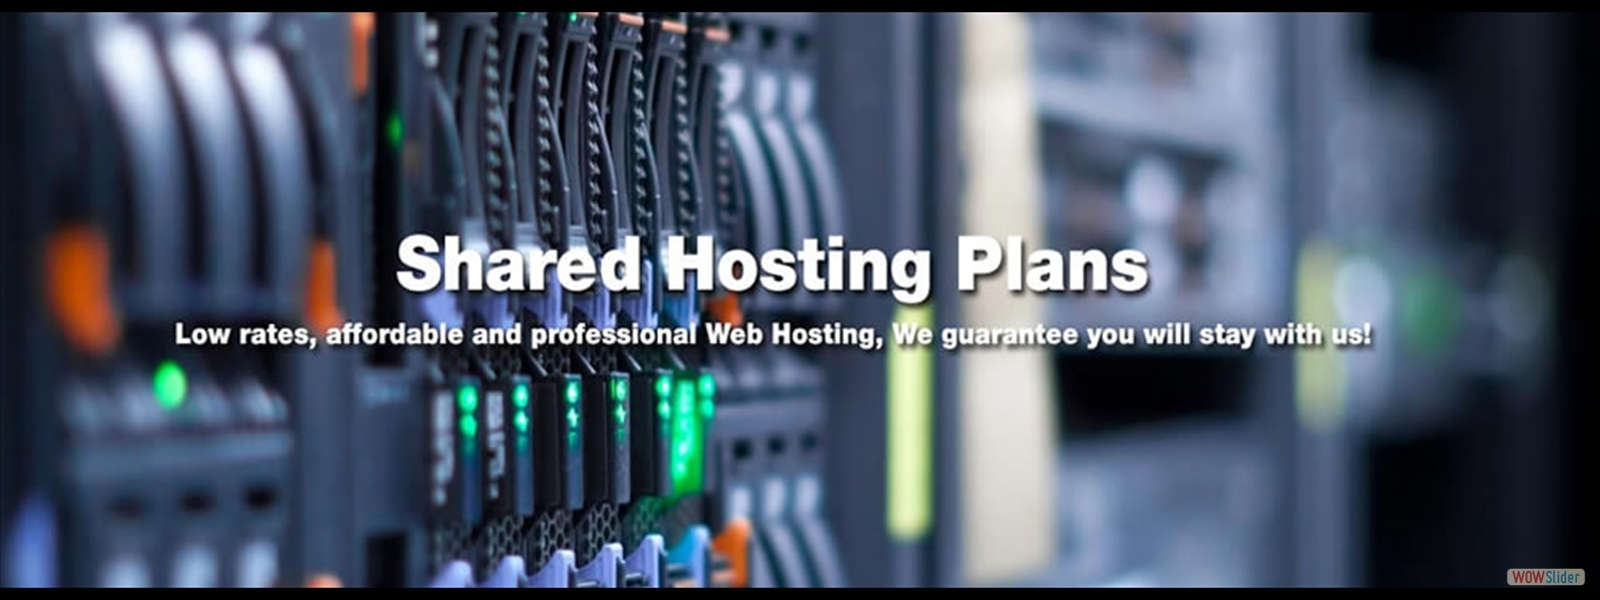 TheBuston Shared Hosting